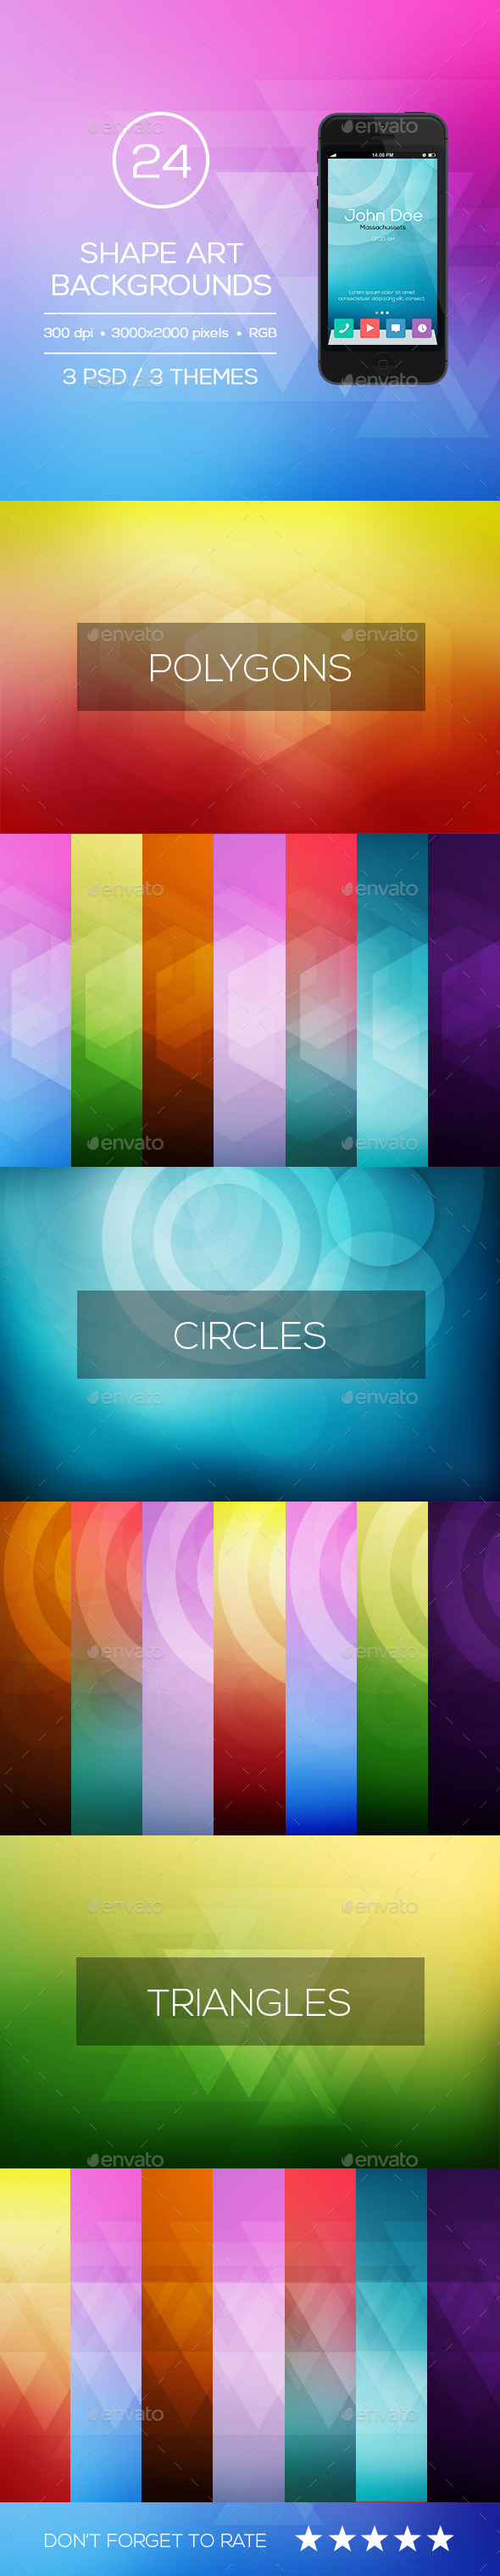 24 Shapes Art Background - with 3 PSD - Abstract Backgrounds